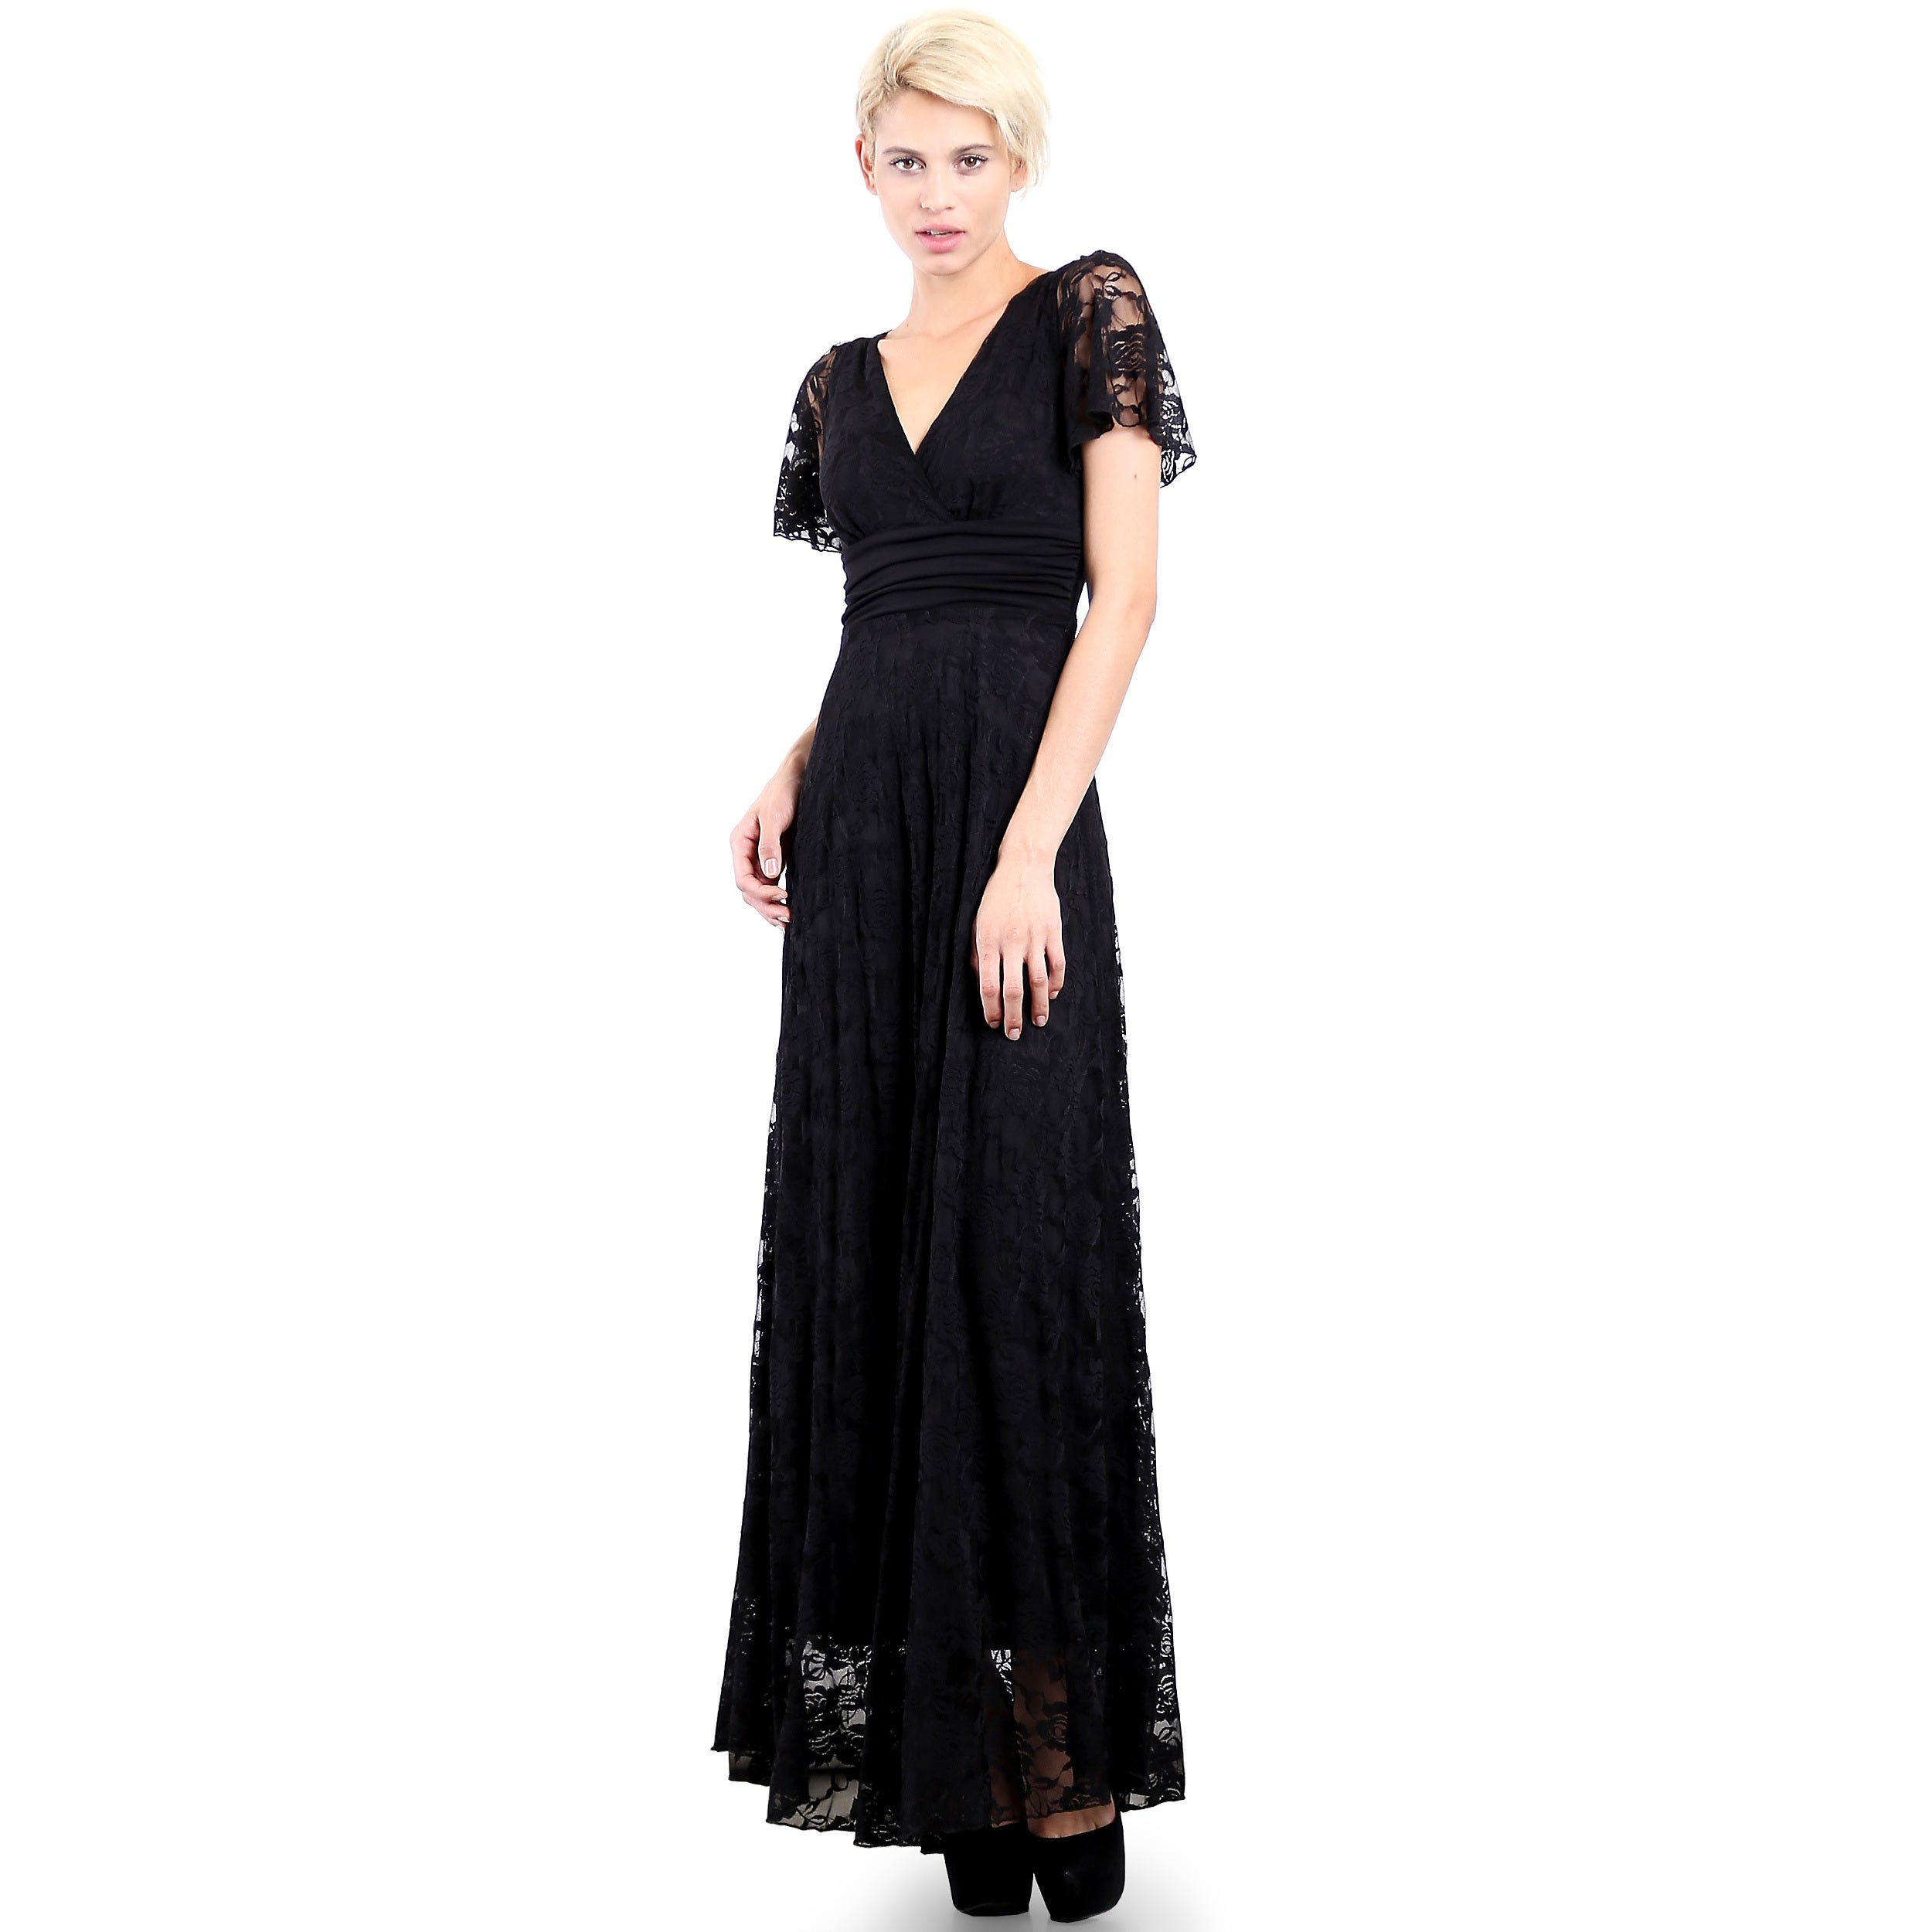 2499bf73ddbb Shop Evanese Women's Elegant Lace Evening Party Formal Long Dress Gown with Empire  Waist Full Skirt and Short Sleeves - Free Shipping Today - Overstock - ...